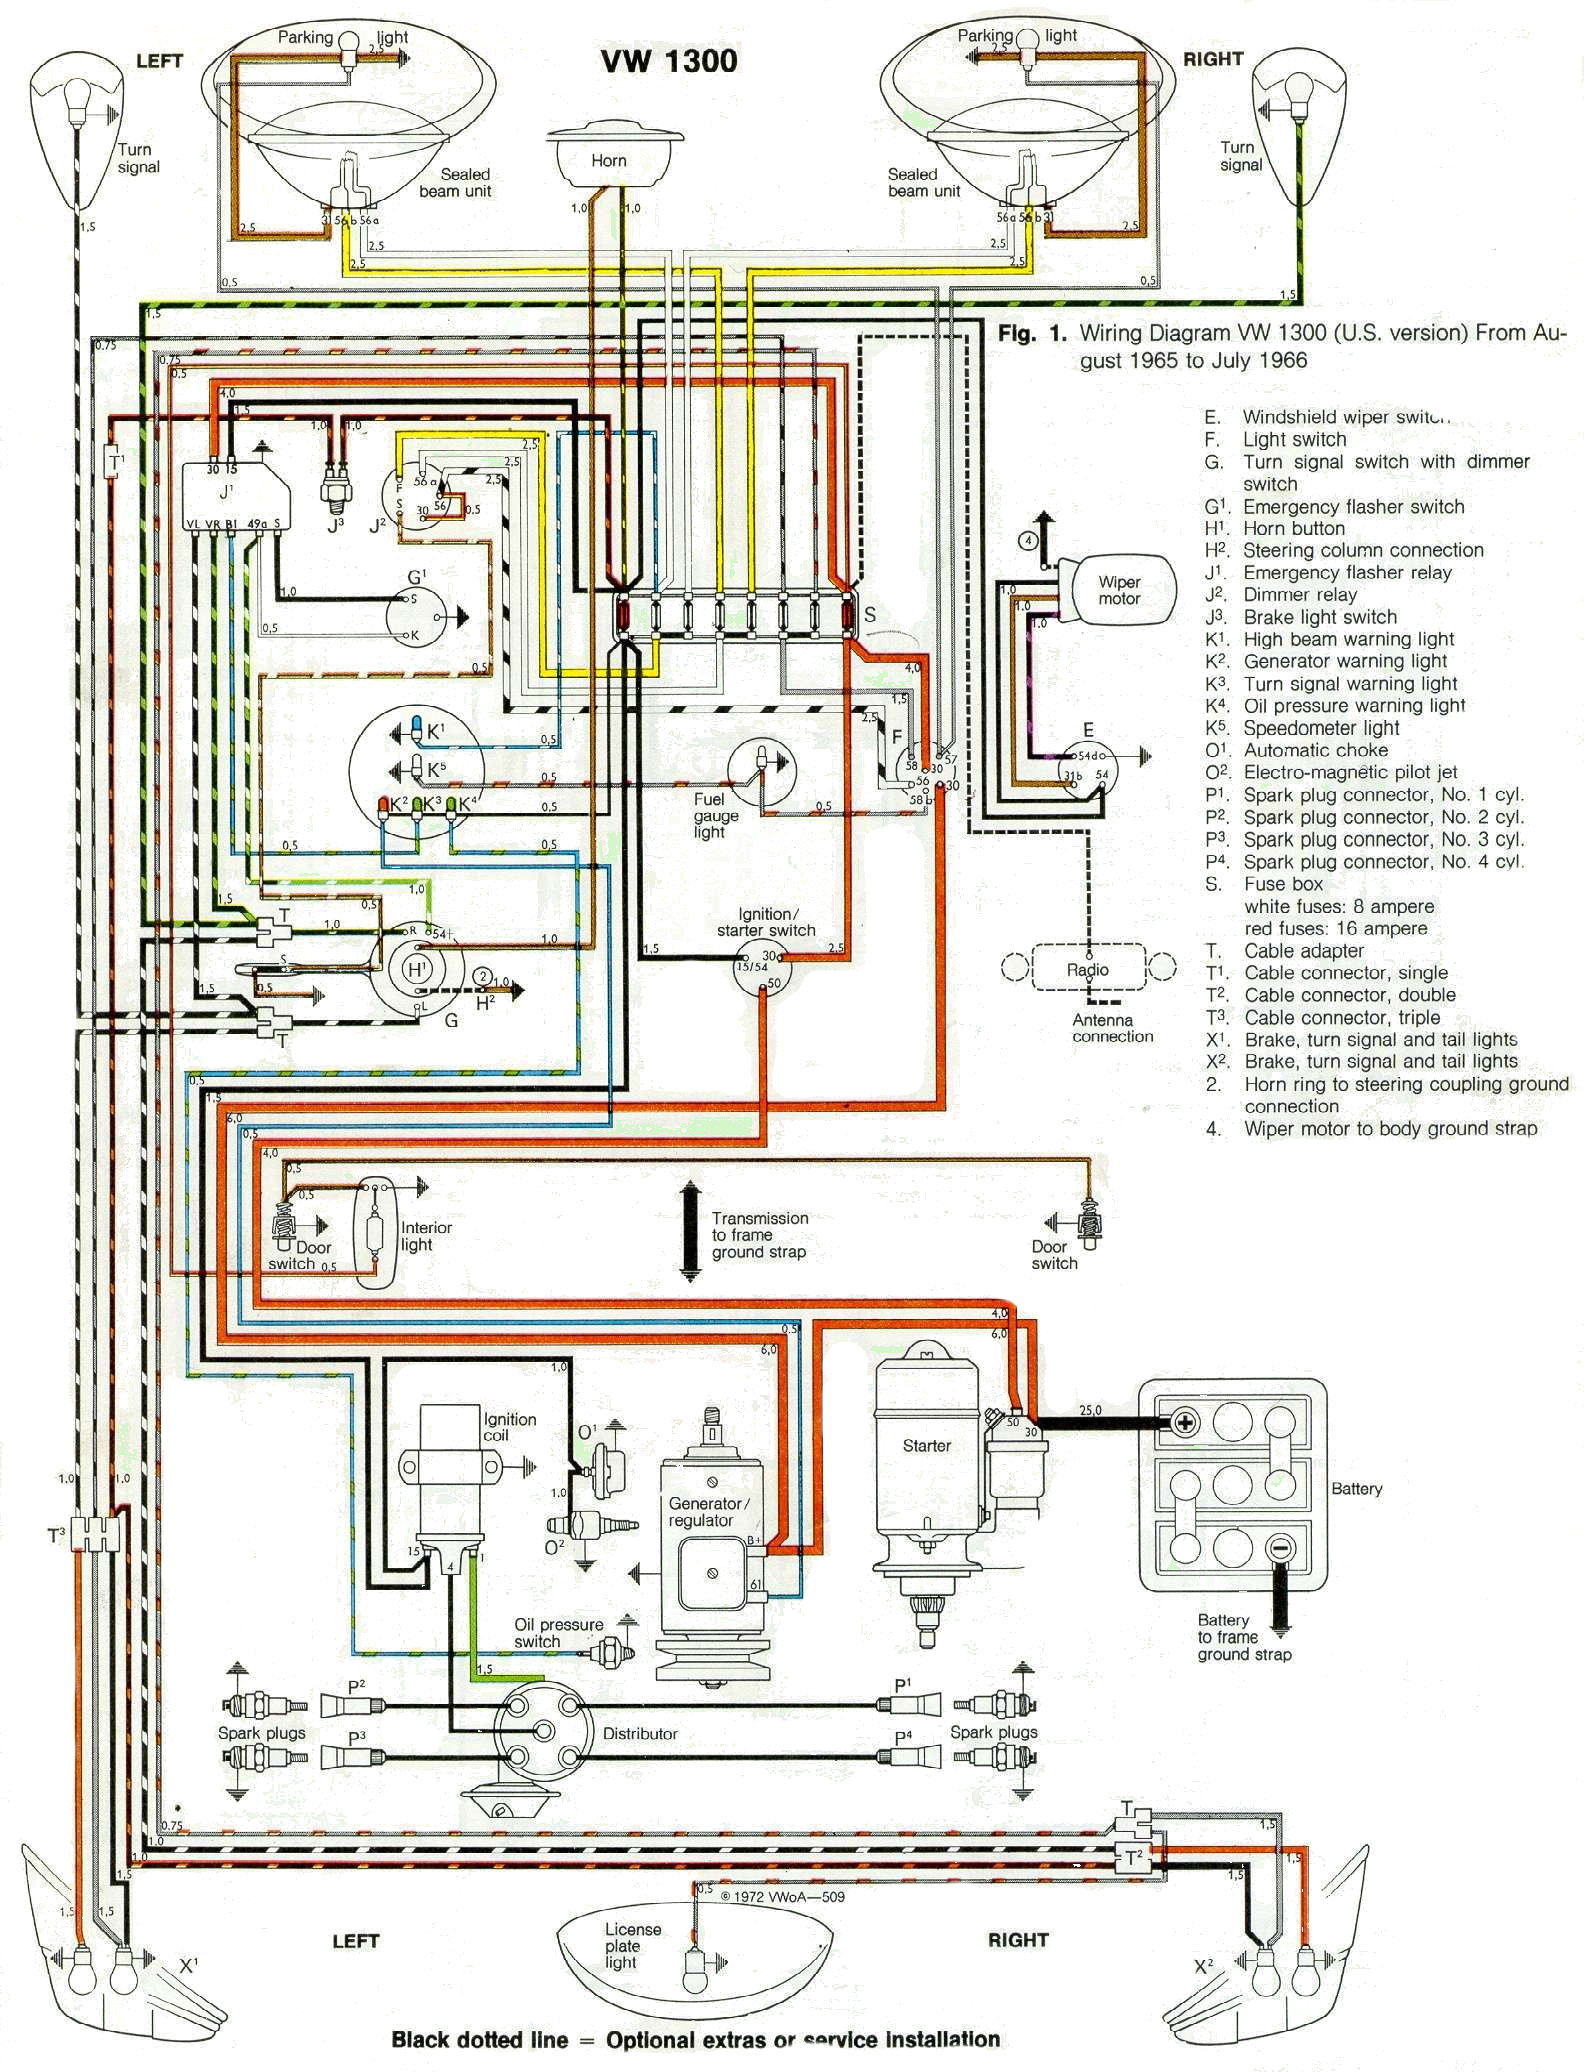 Marvelous 1965 Vw Beetle Wiring Diagram Basic Electronics Wiring Diagram Wiring 101 Ivorowellnesstrialsorg